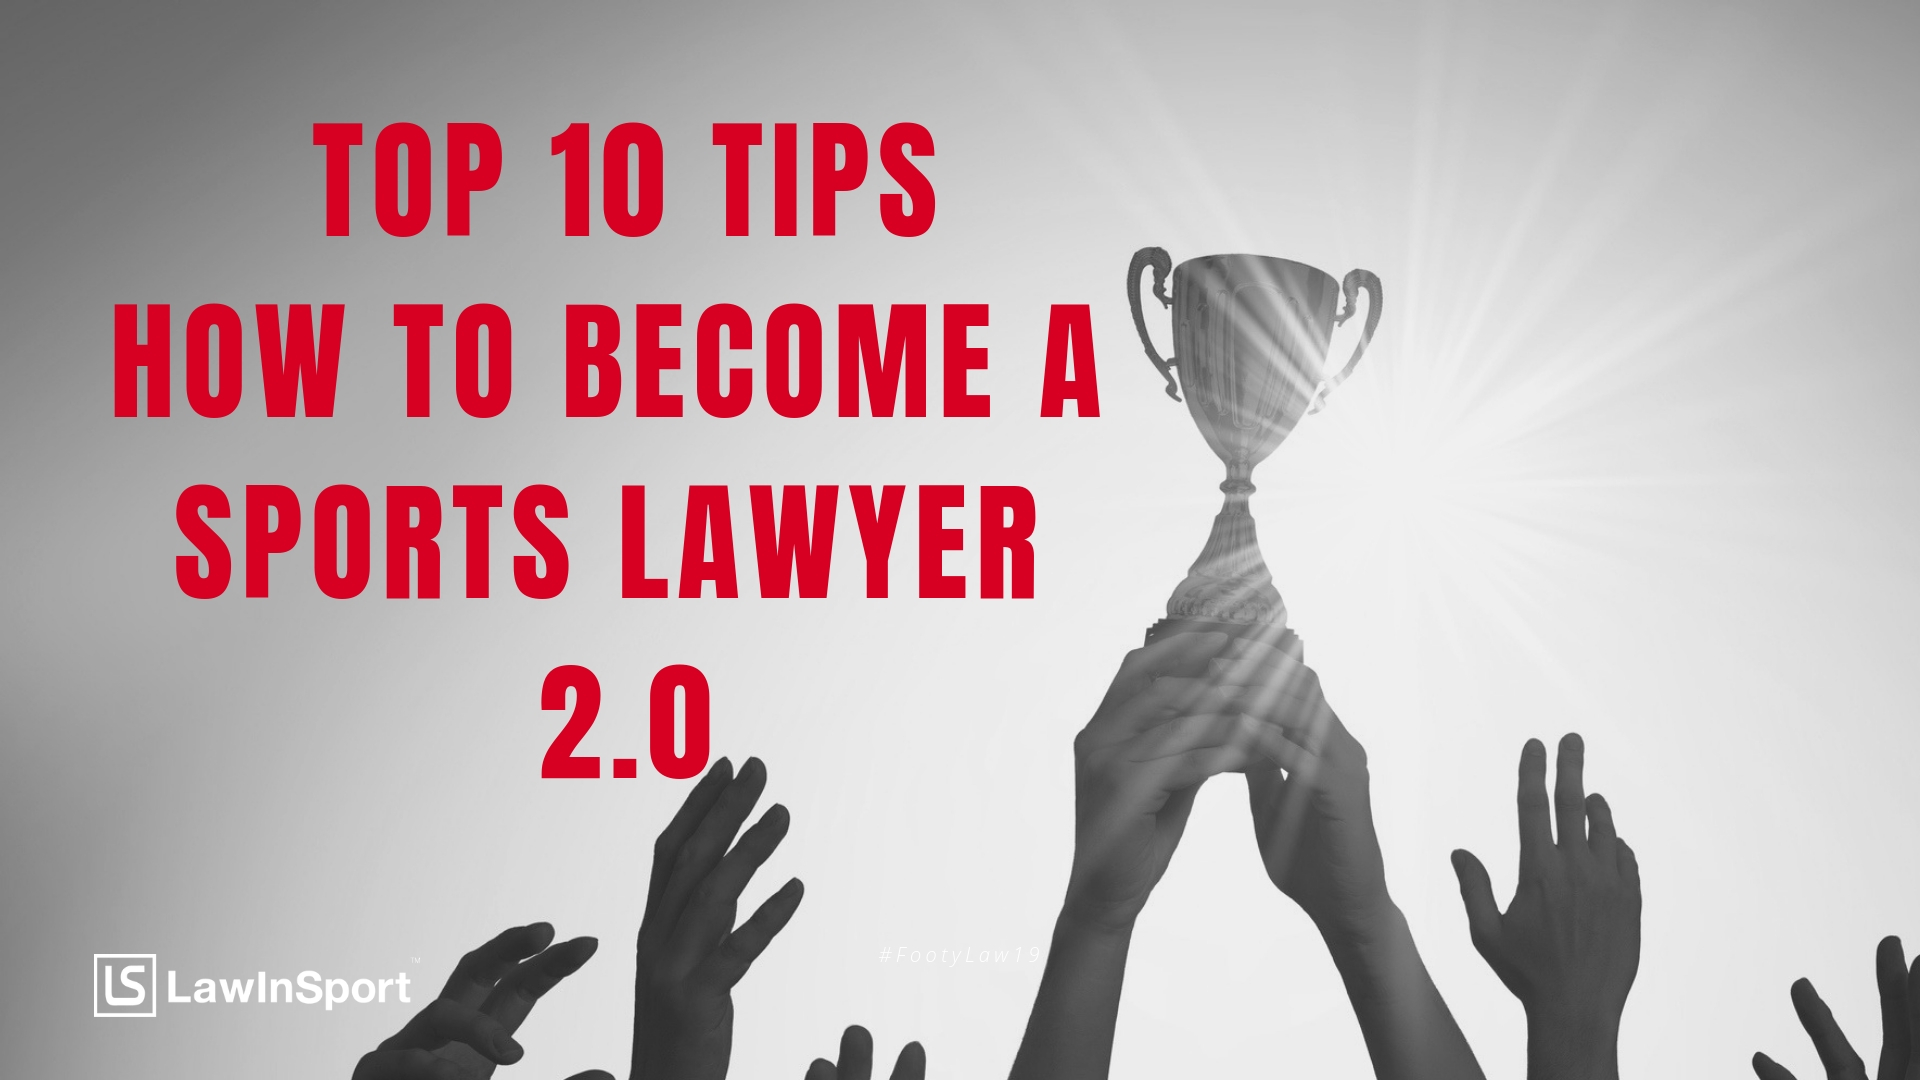 Top 10 tips on how to become a sports lawyer 2.0